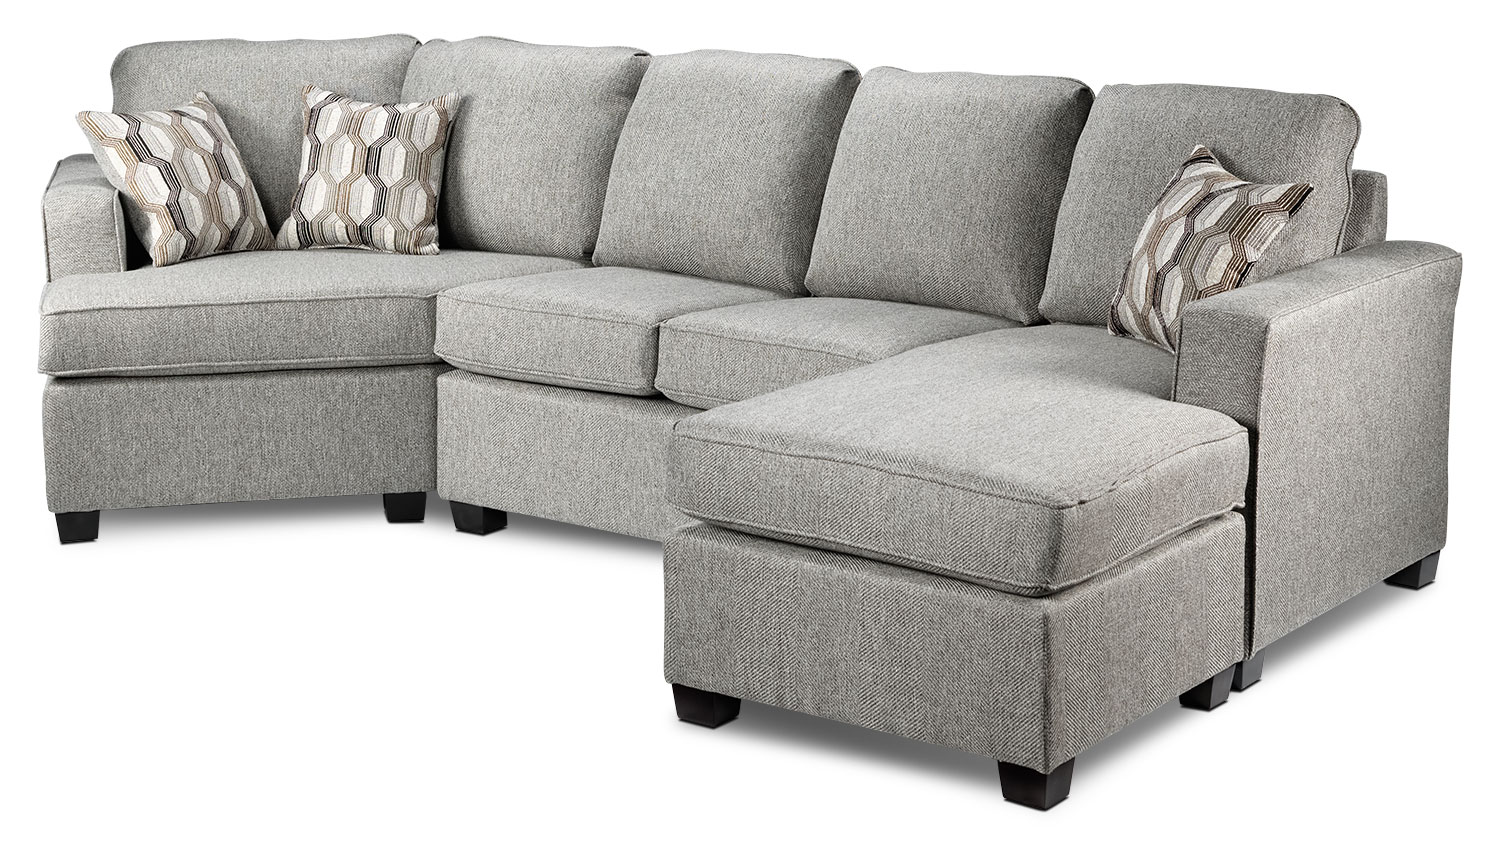 Living Room Furniture - Downtown 2-Piece Right-Facing Sectional - Grey